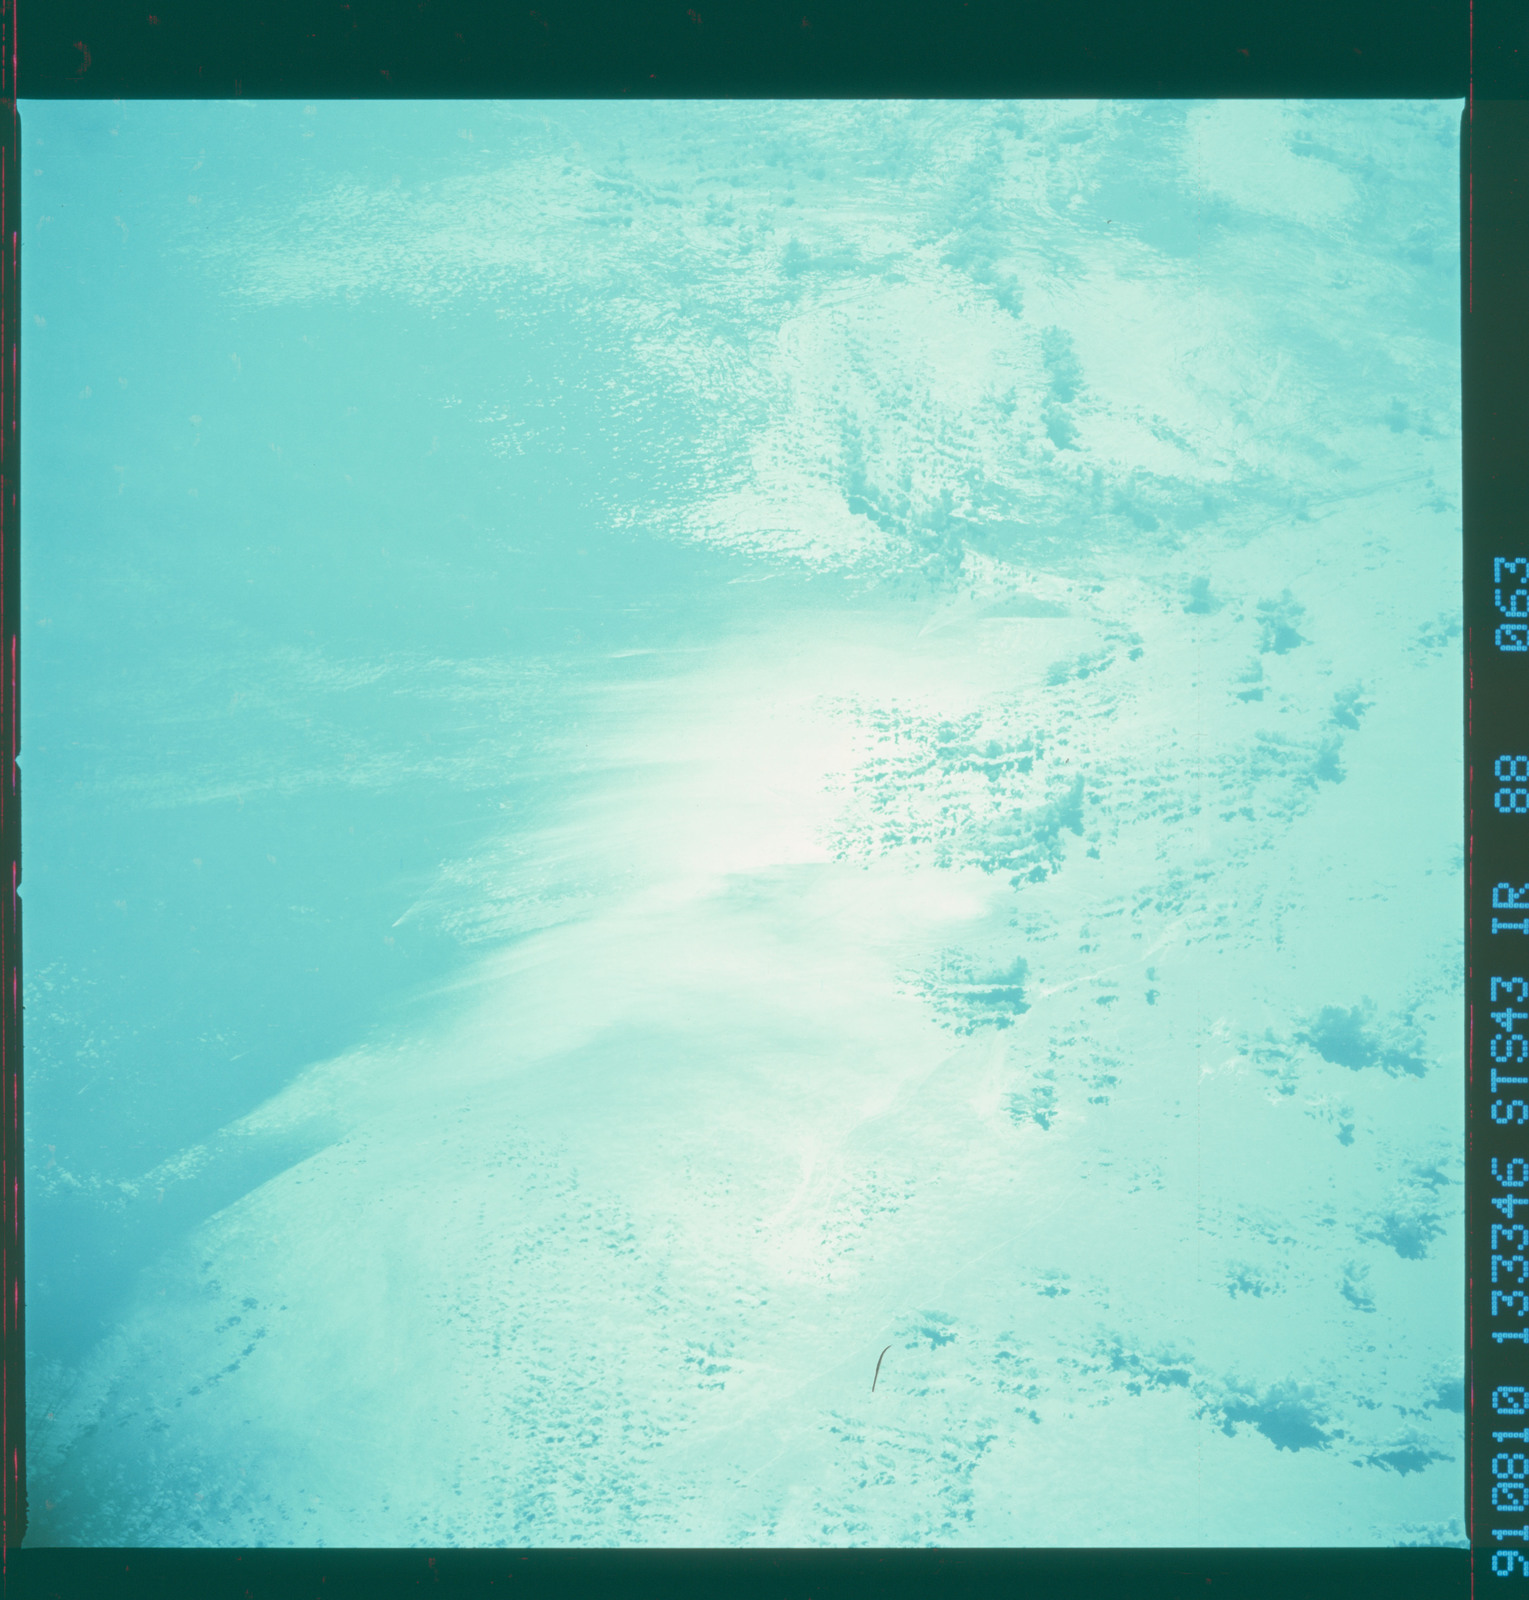 S43-88-063 - STS-043 - STS-43 earth observations